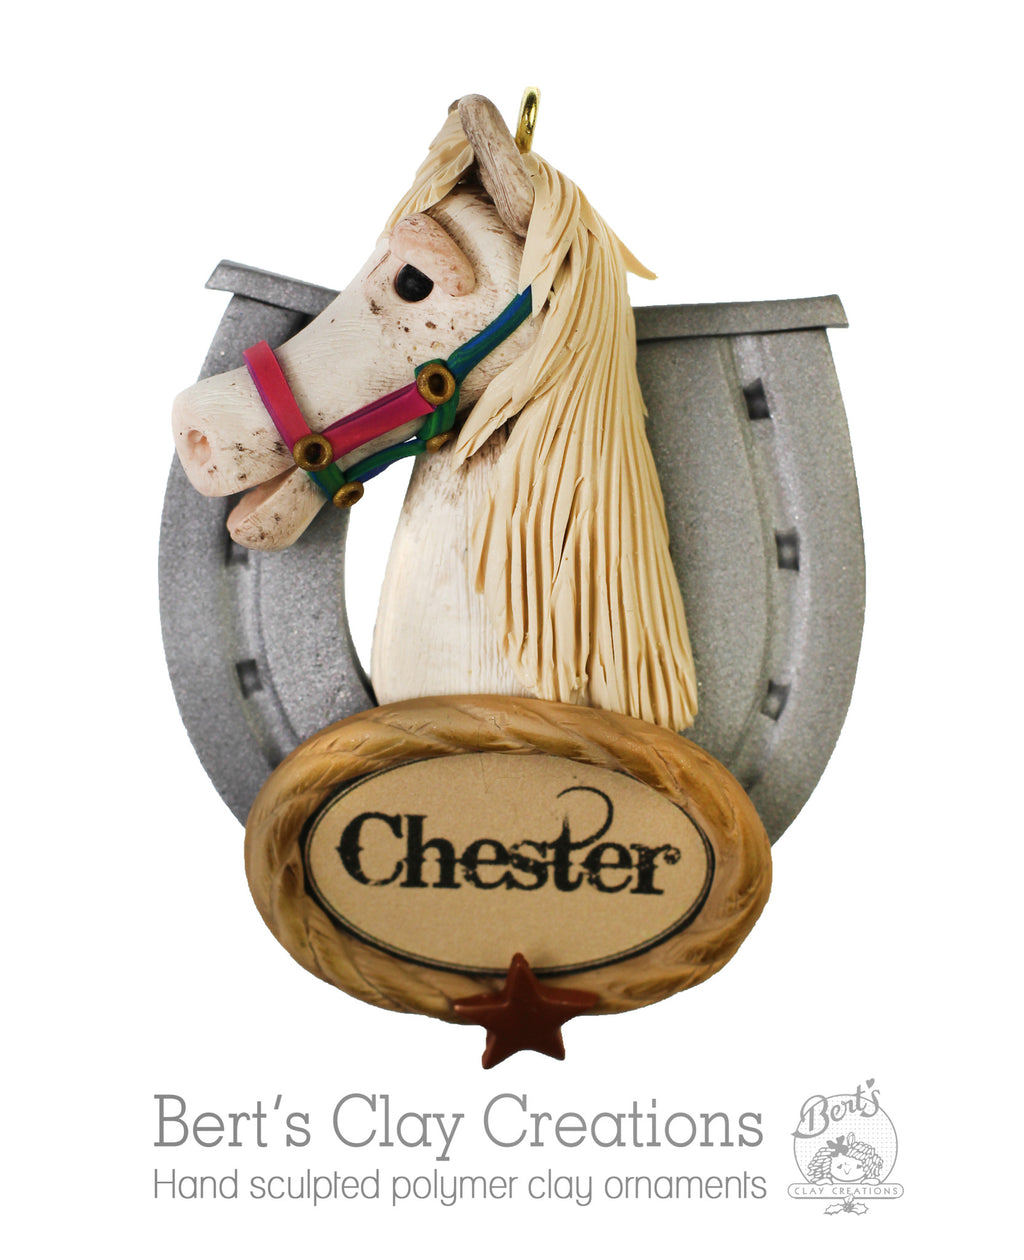 Horse Head Replica Ornament - Bert's Clay Creations